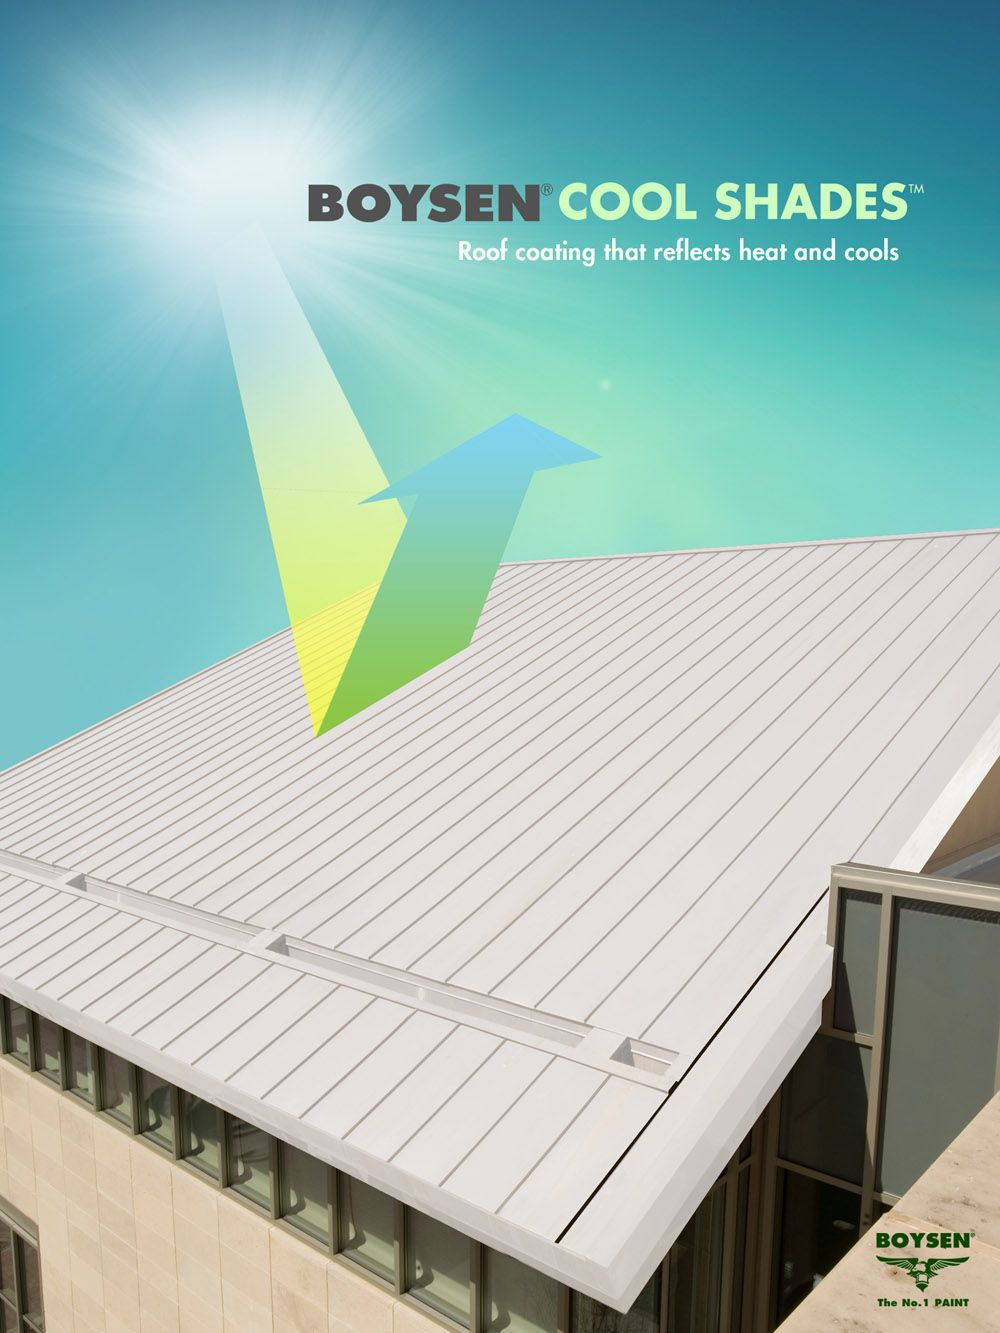 Boysen Cool Shades Is A Heat Reflective Colored Roof